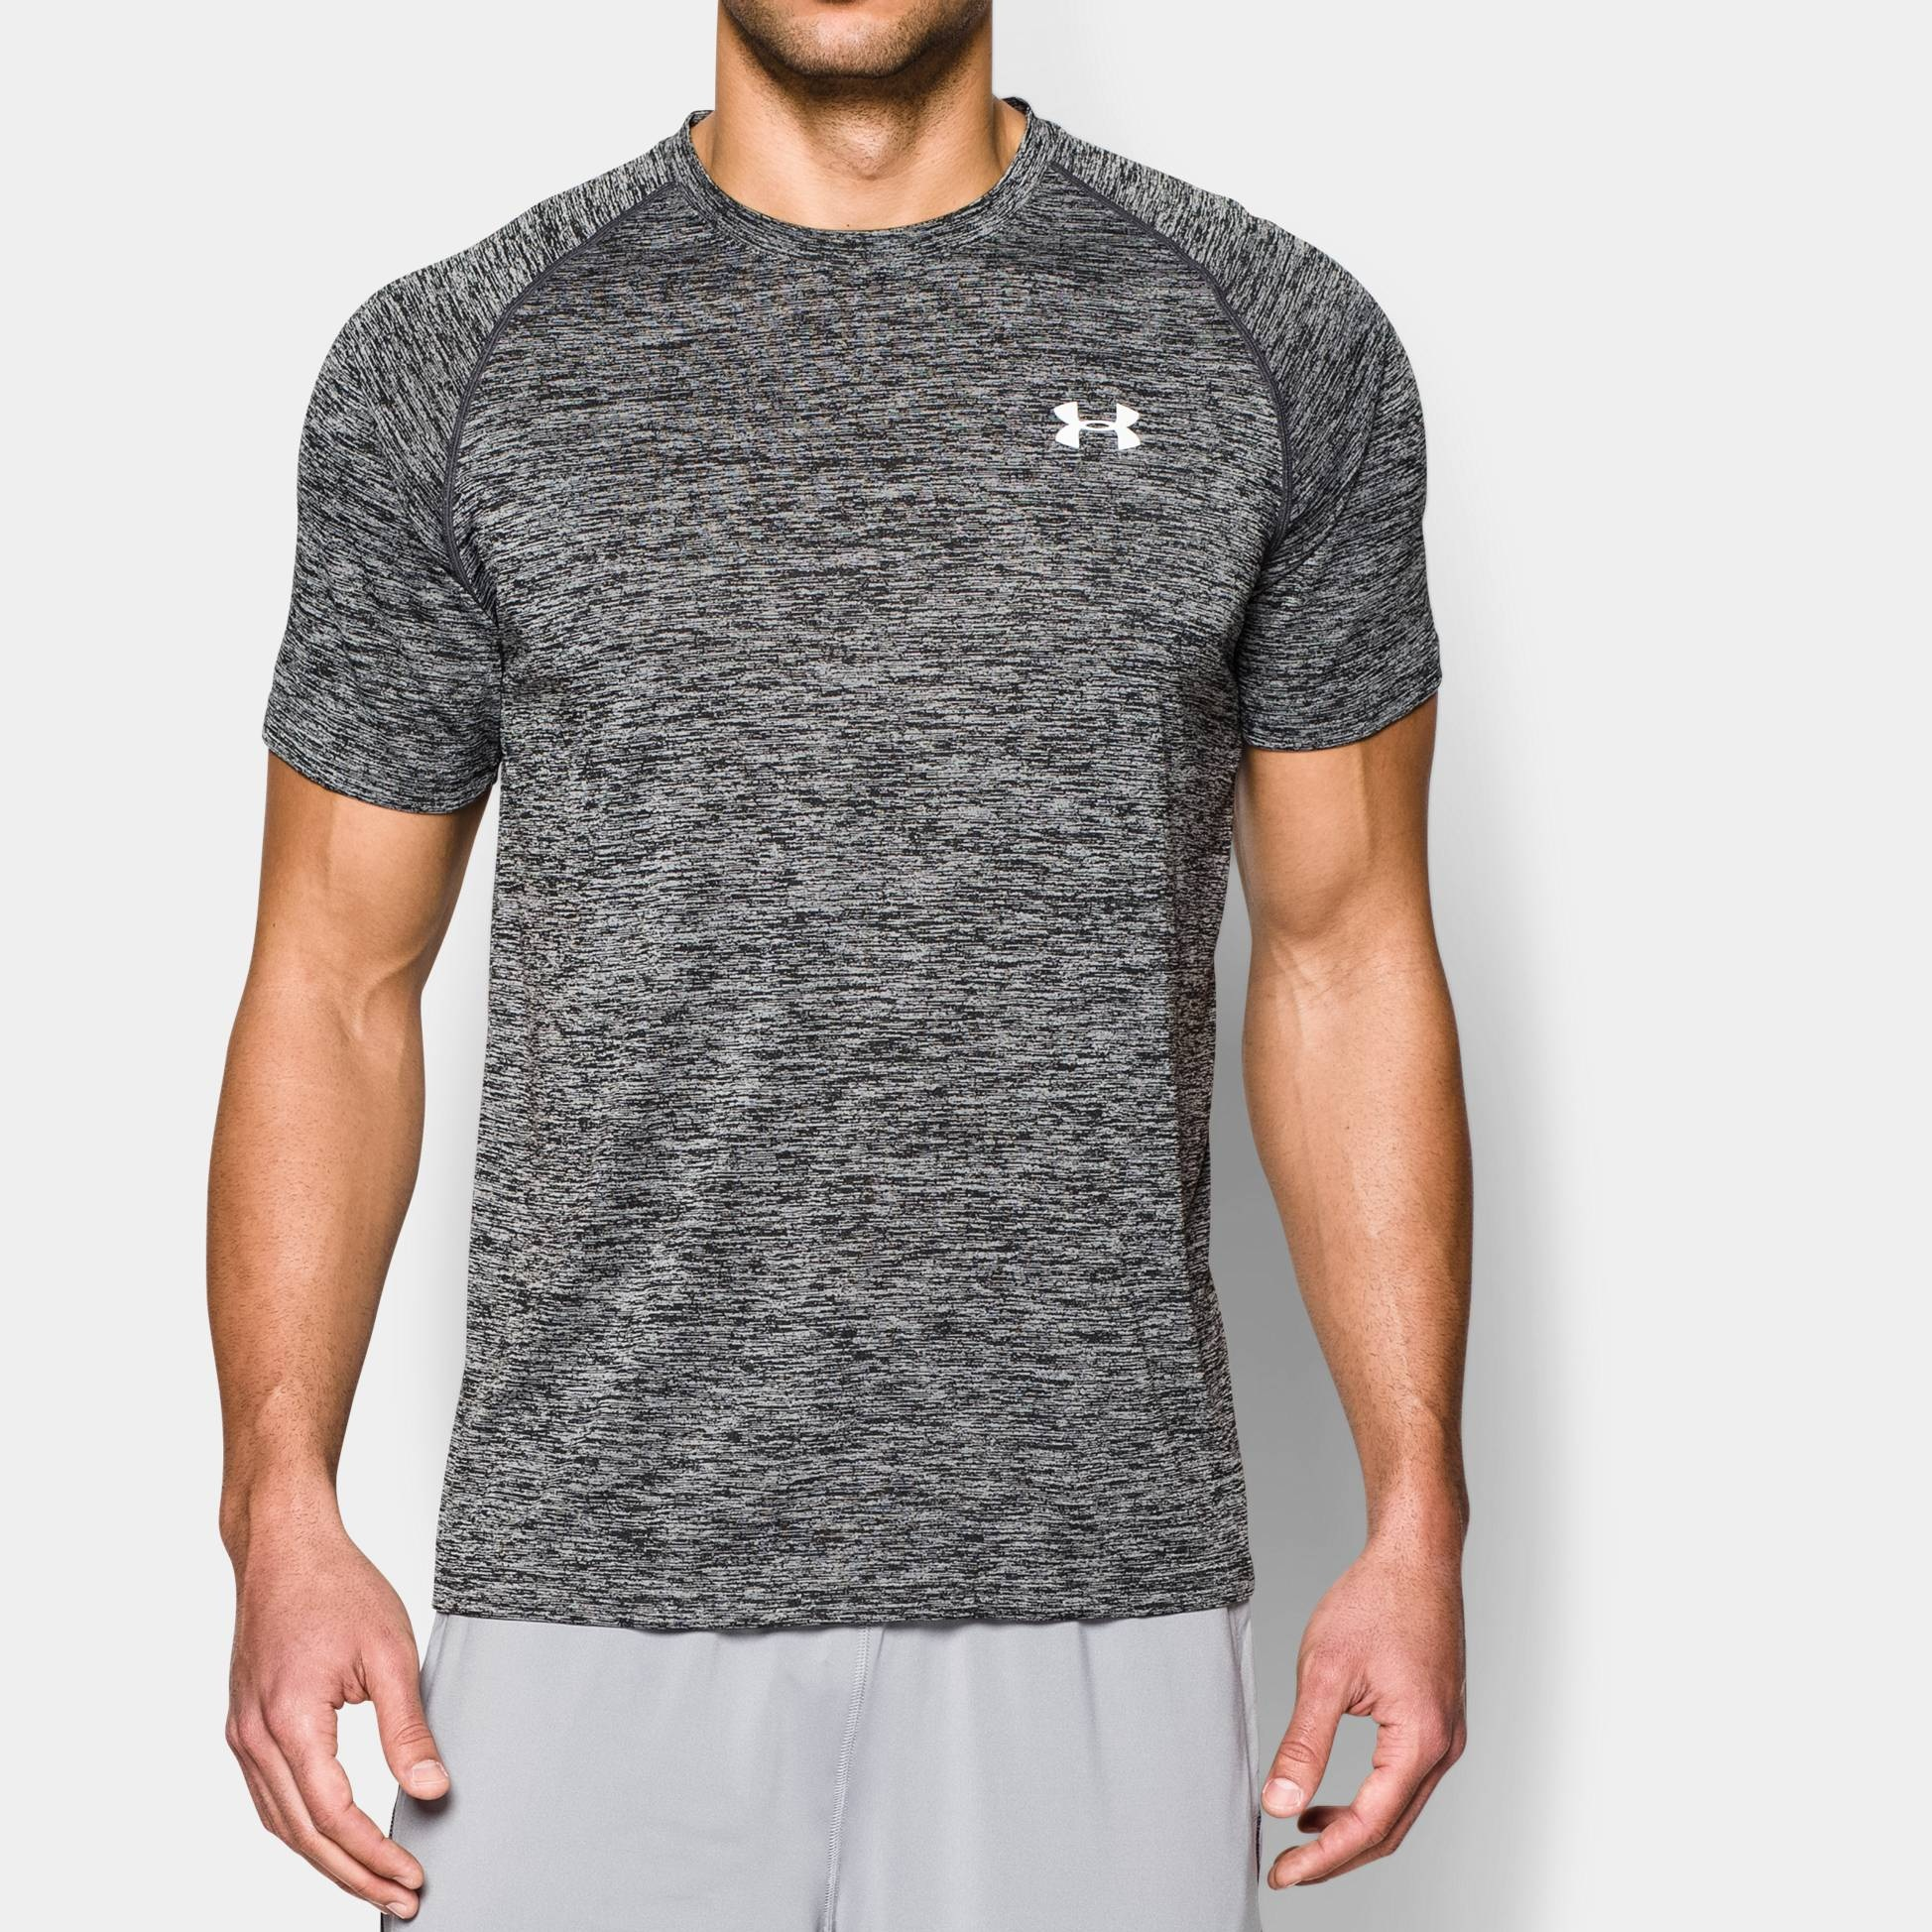 clothing under armour short sleeve t shirt fitness